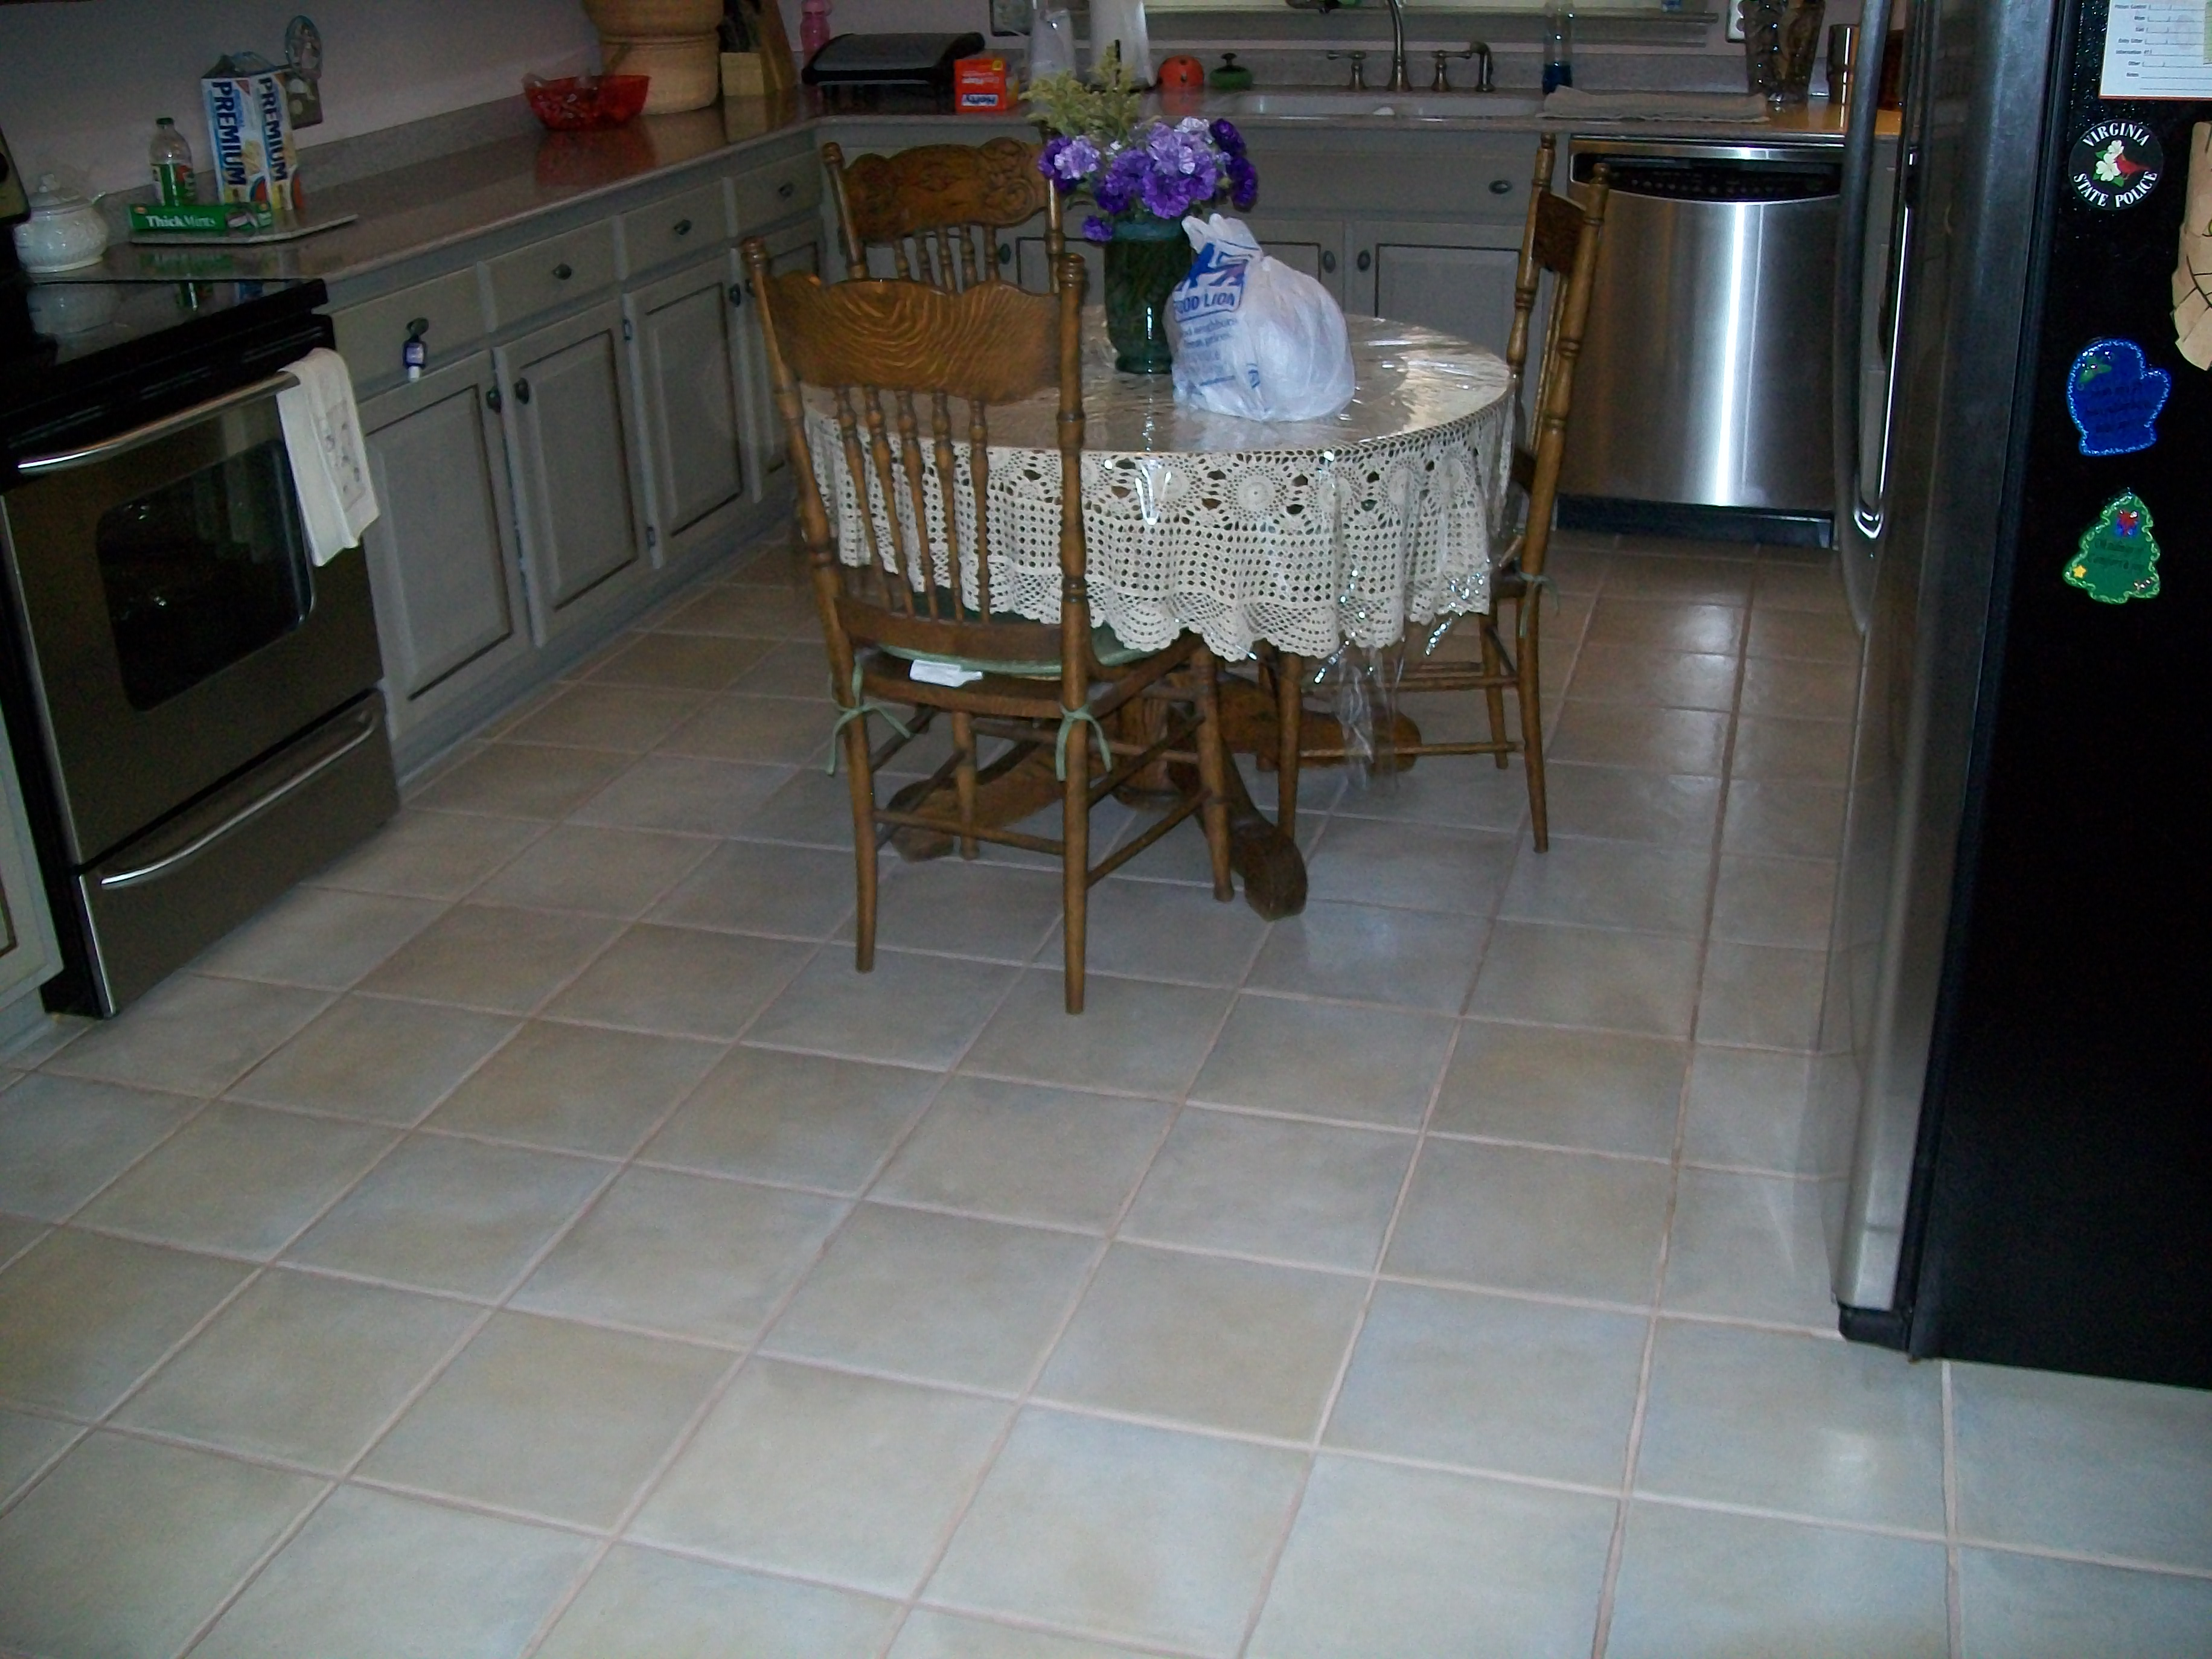 Tile cleaning in central virginia call 434 335 6000 today grout is difficult to clean and requires extra care and special cleaning equipment we have the sx7 tile cleaner that will clean the dailygadgetfo Image collections